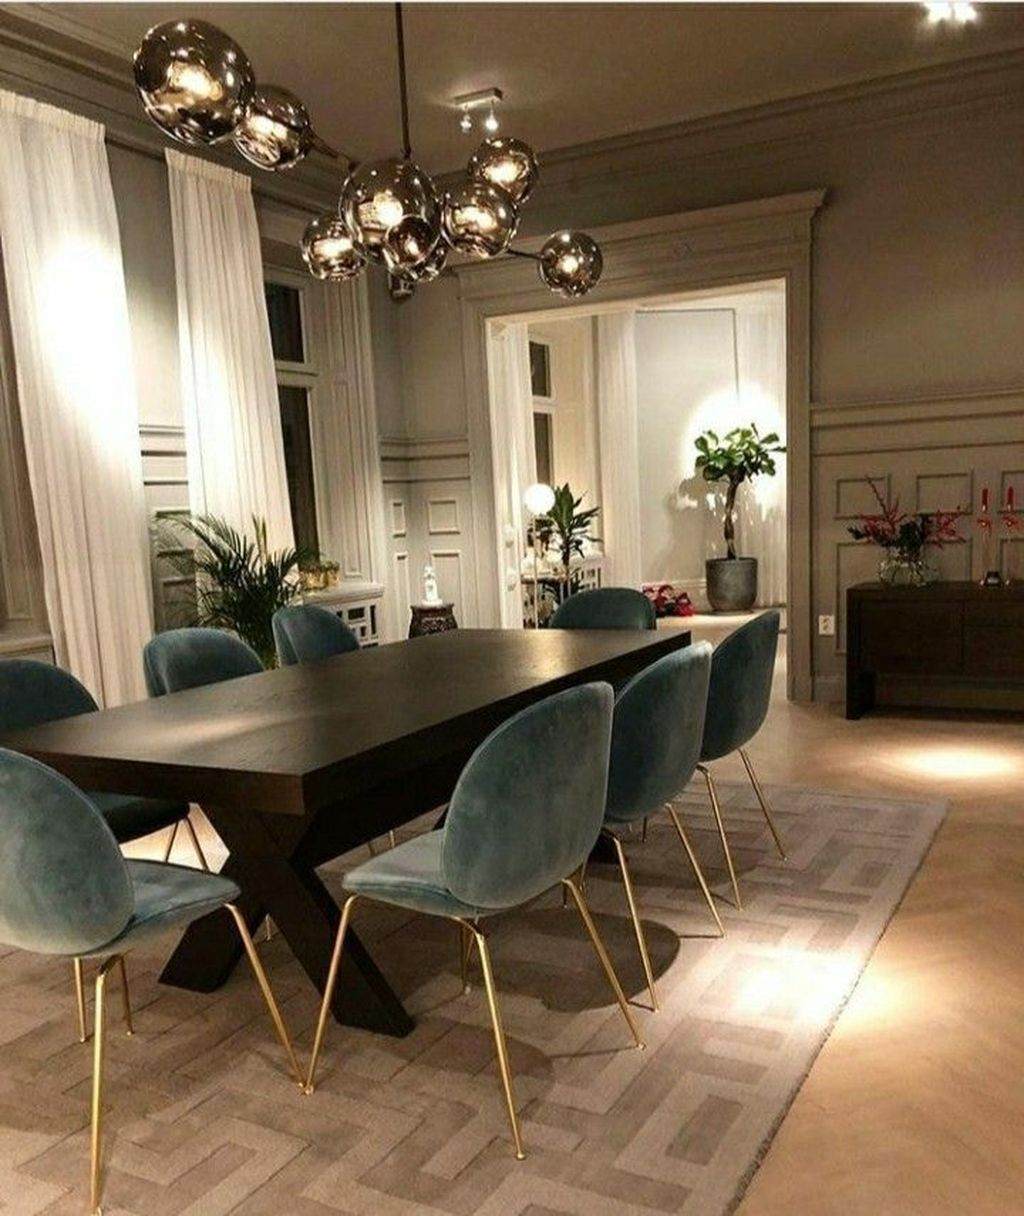 20 Spectacular Lighting Design Ideas For Awesome Dining Room